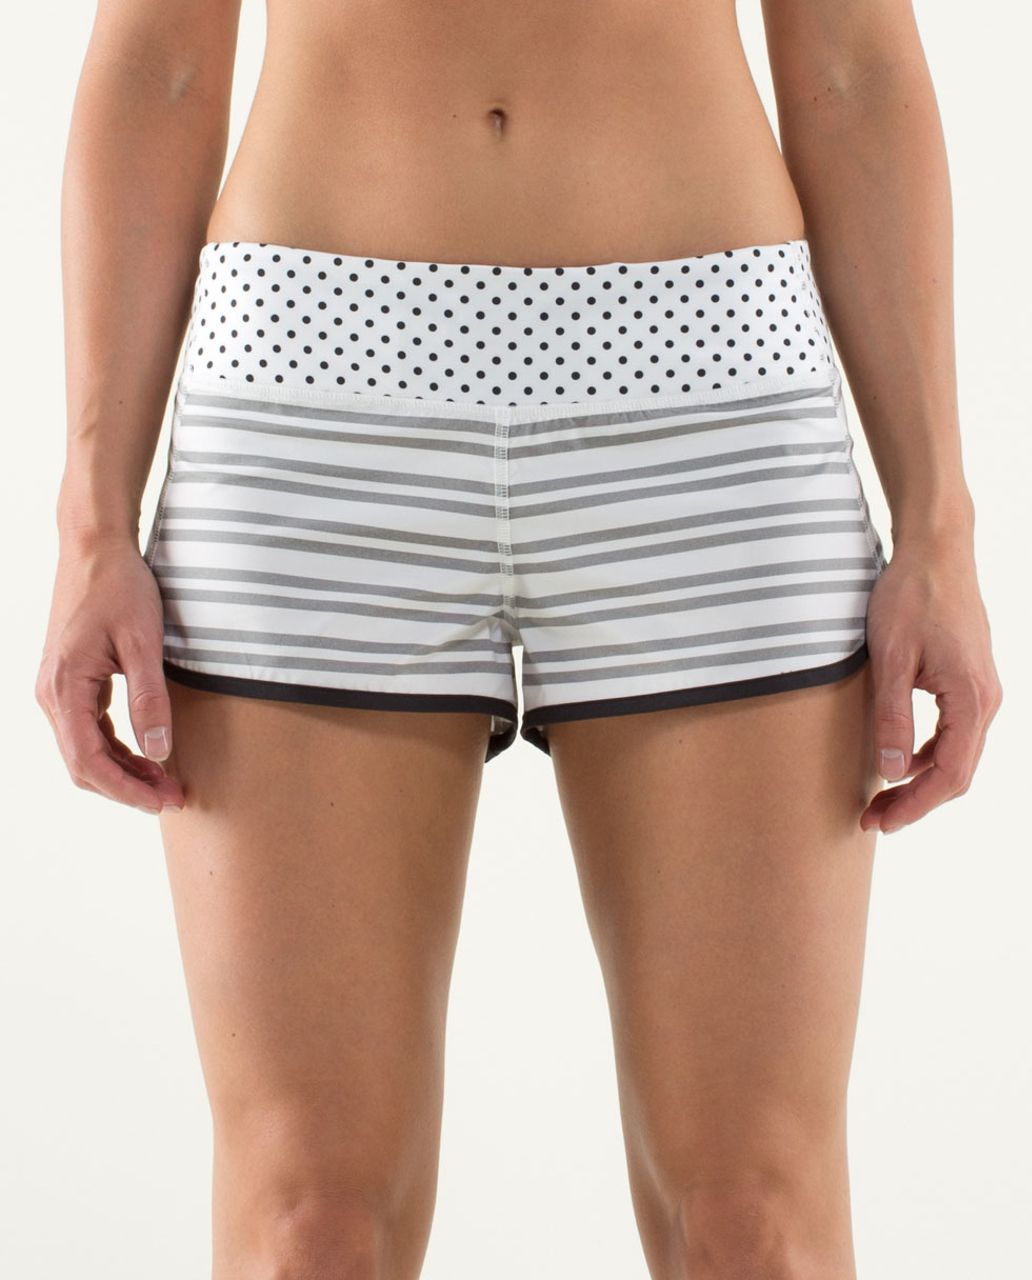 Lululemon Run:  Speed Short - Twin Stripe Black / Black / Mod Dot Printed Black